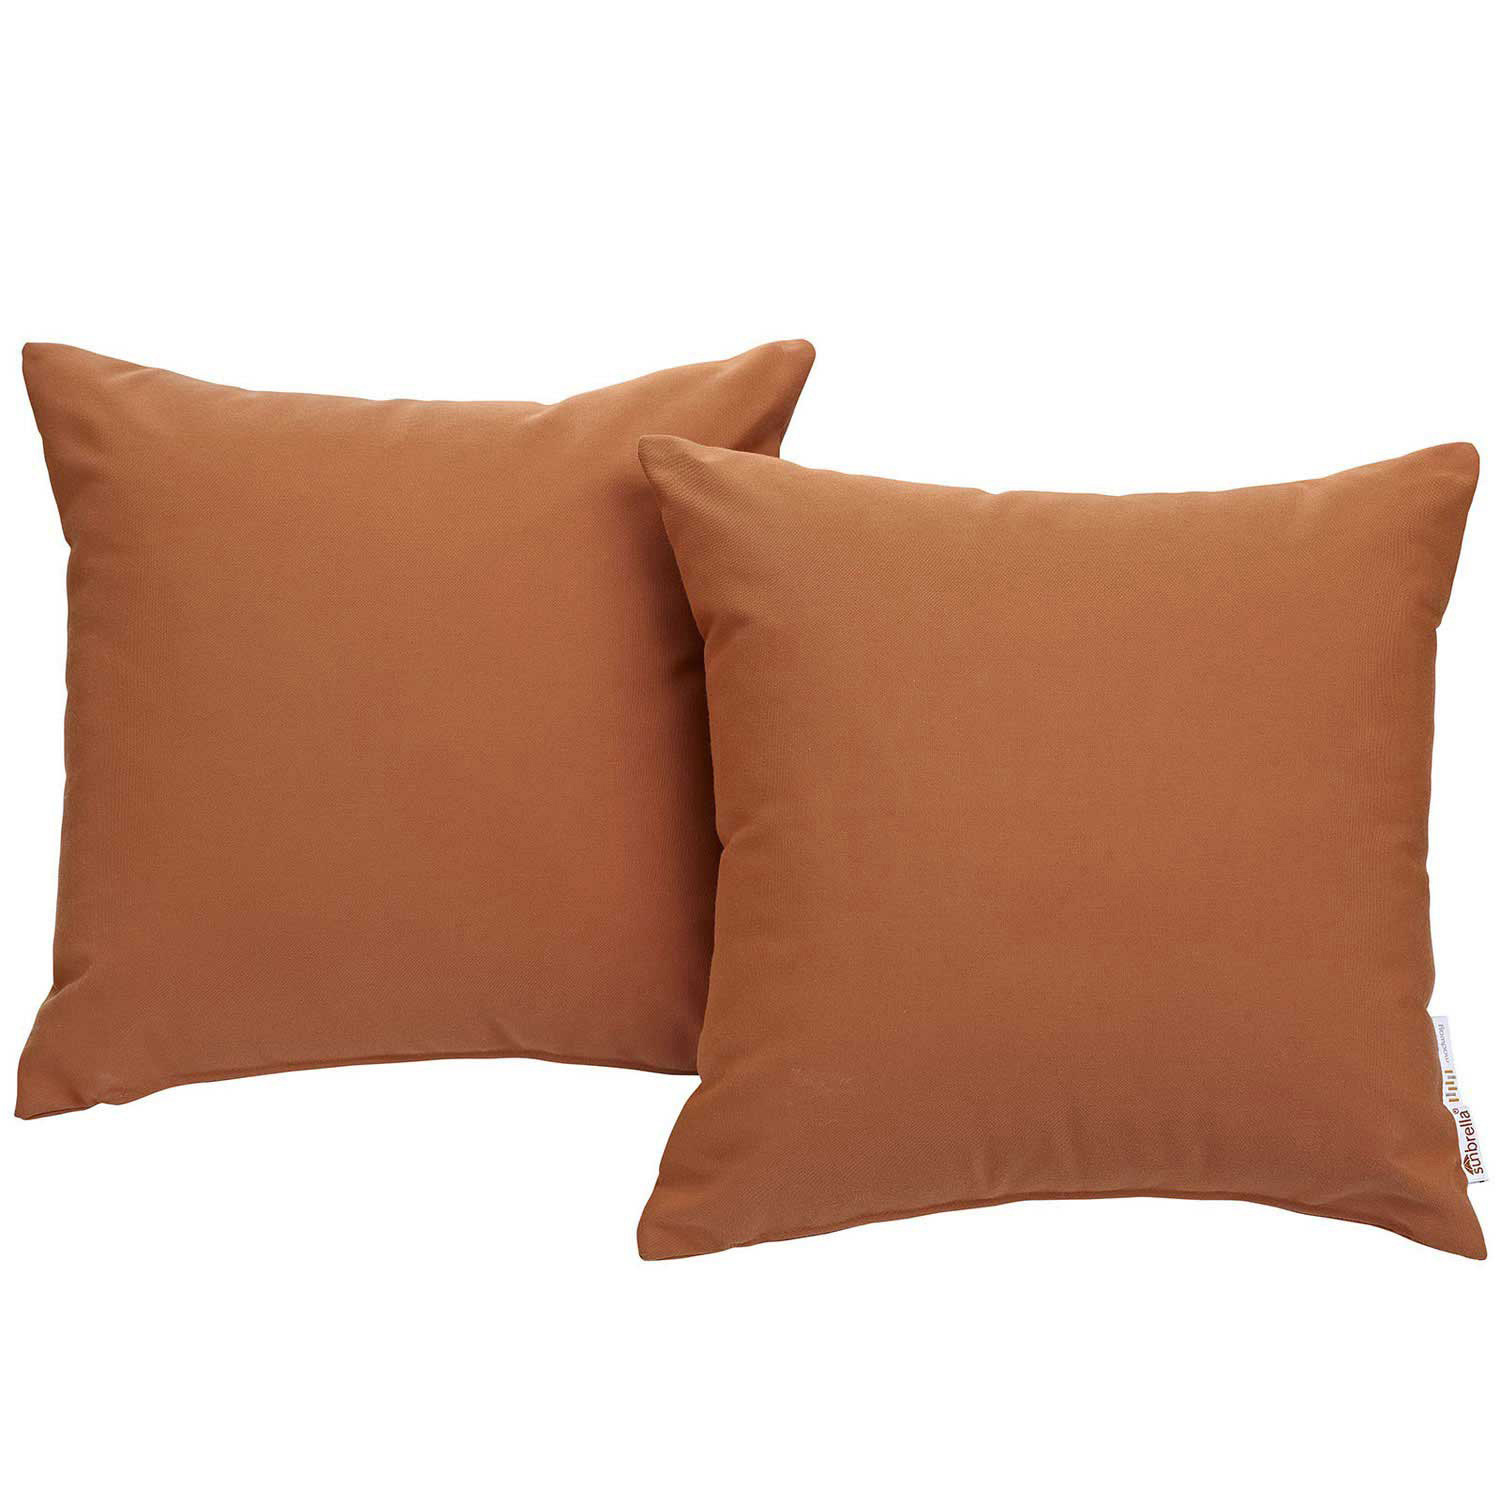 Modway Summon 2 Piece Outdoor Patio Pillow Set - Tuscan